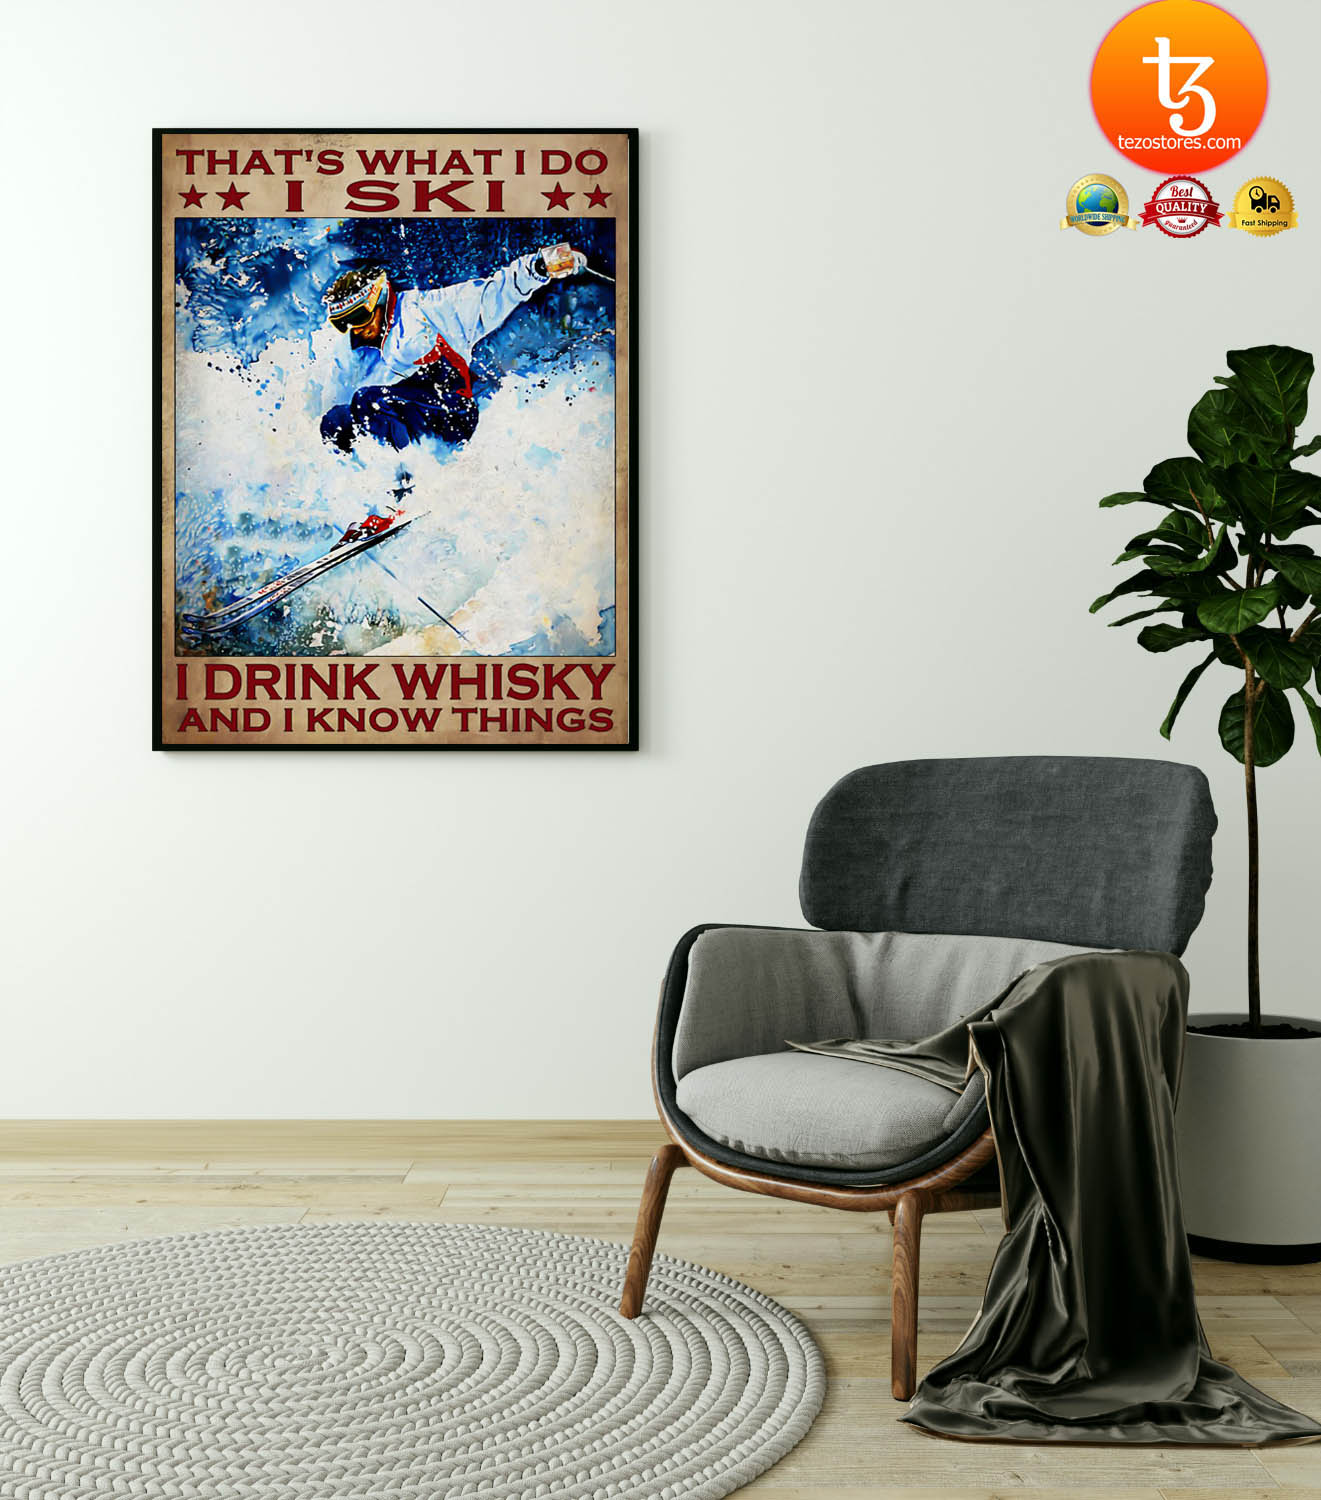 That's what I do I ski I drink whisky and I know things poster 19